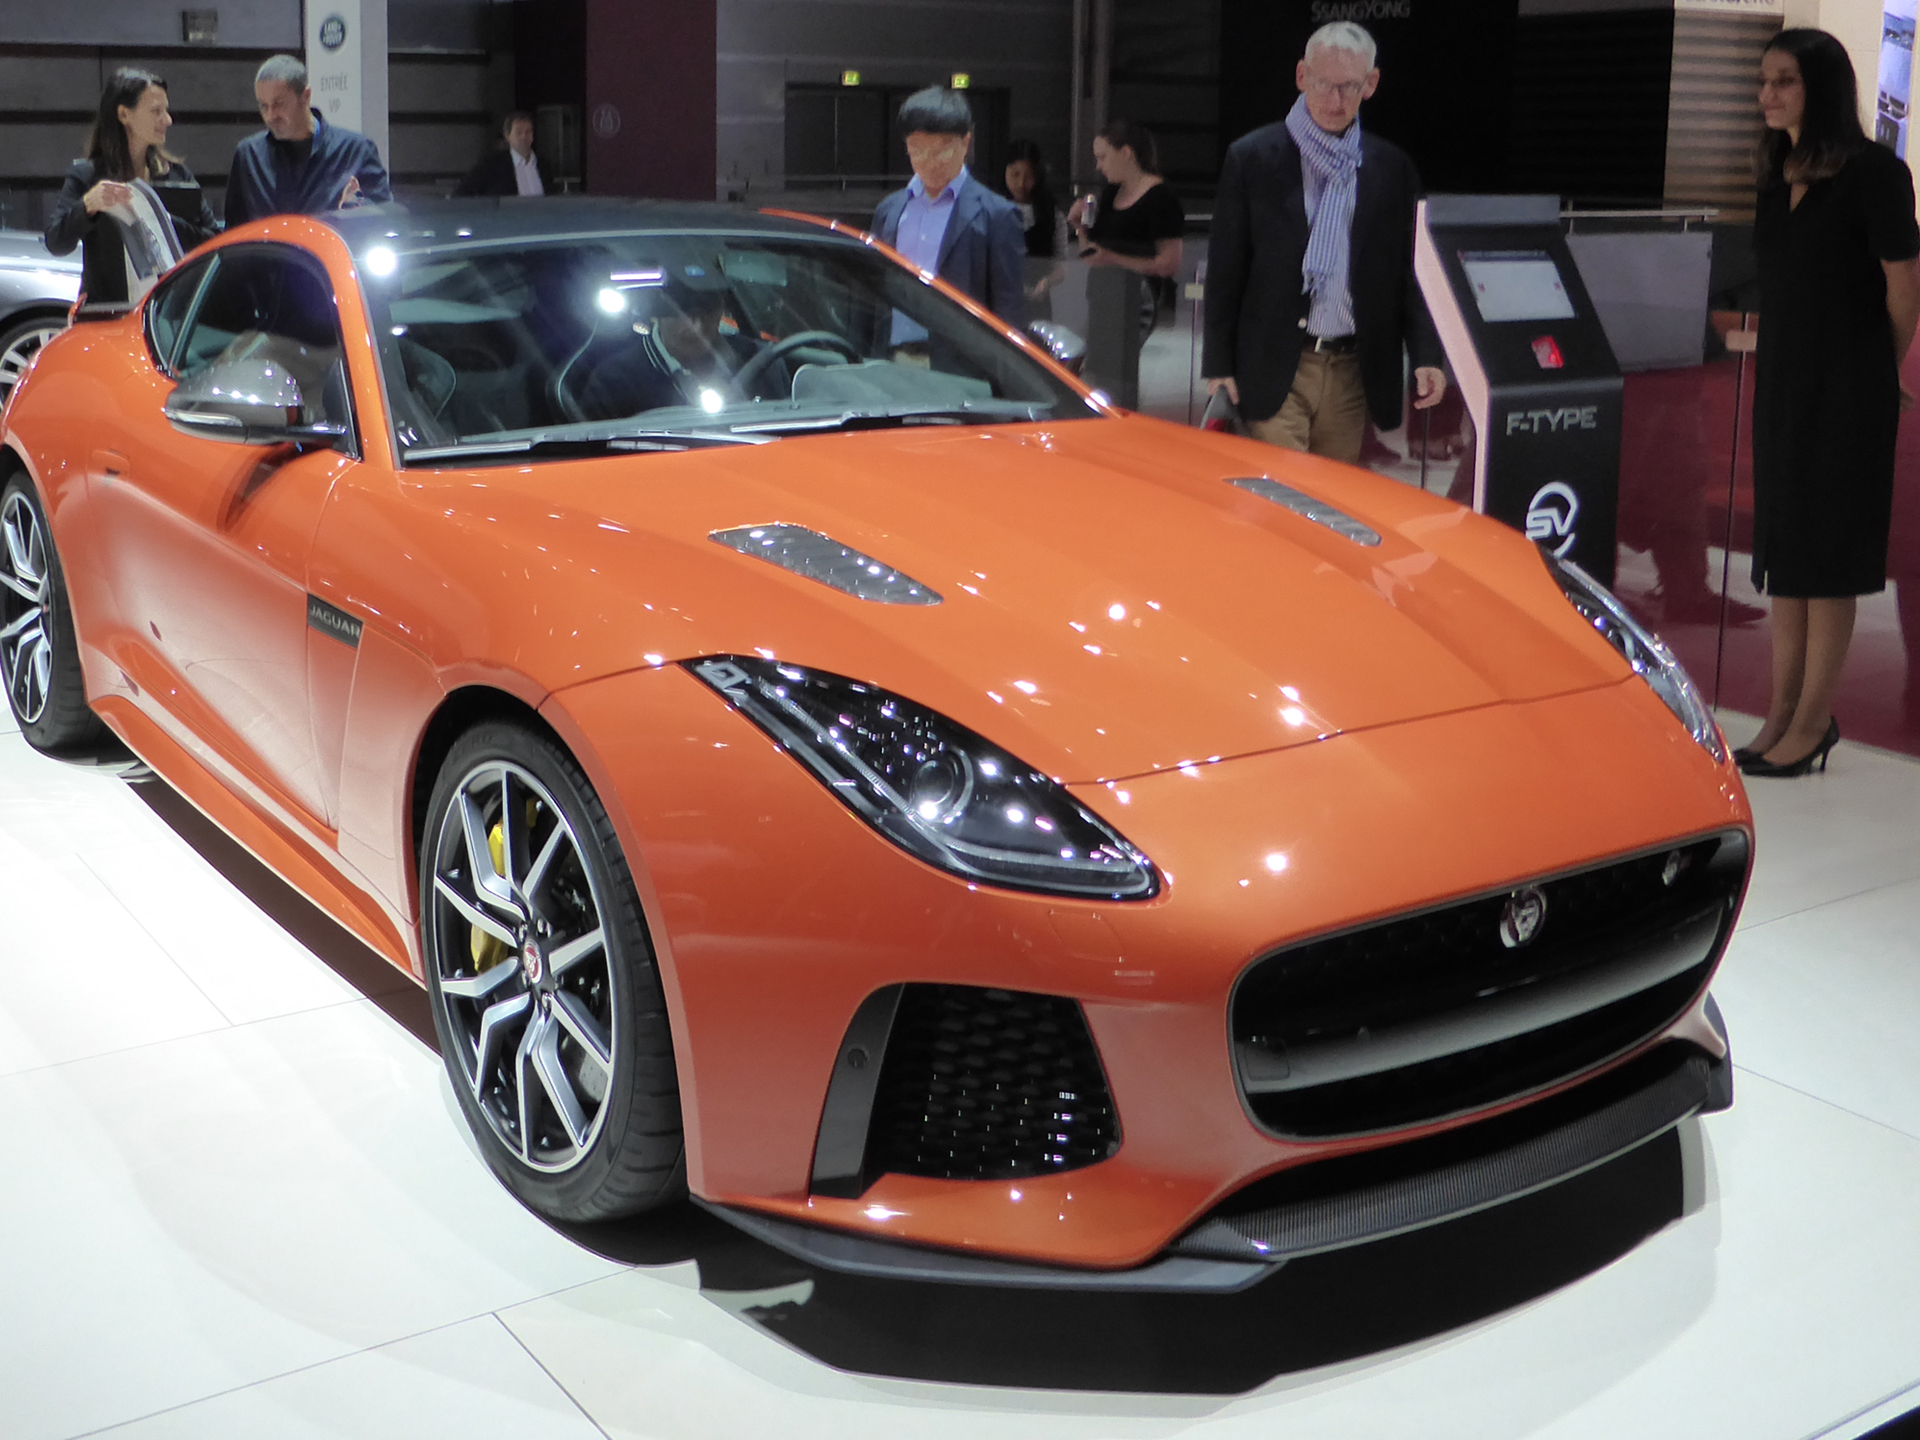 Jaguar F-TYPE - avant / front - 2016 - Mondial Auto - photo ELJ DM